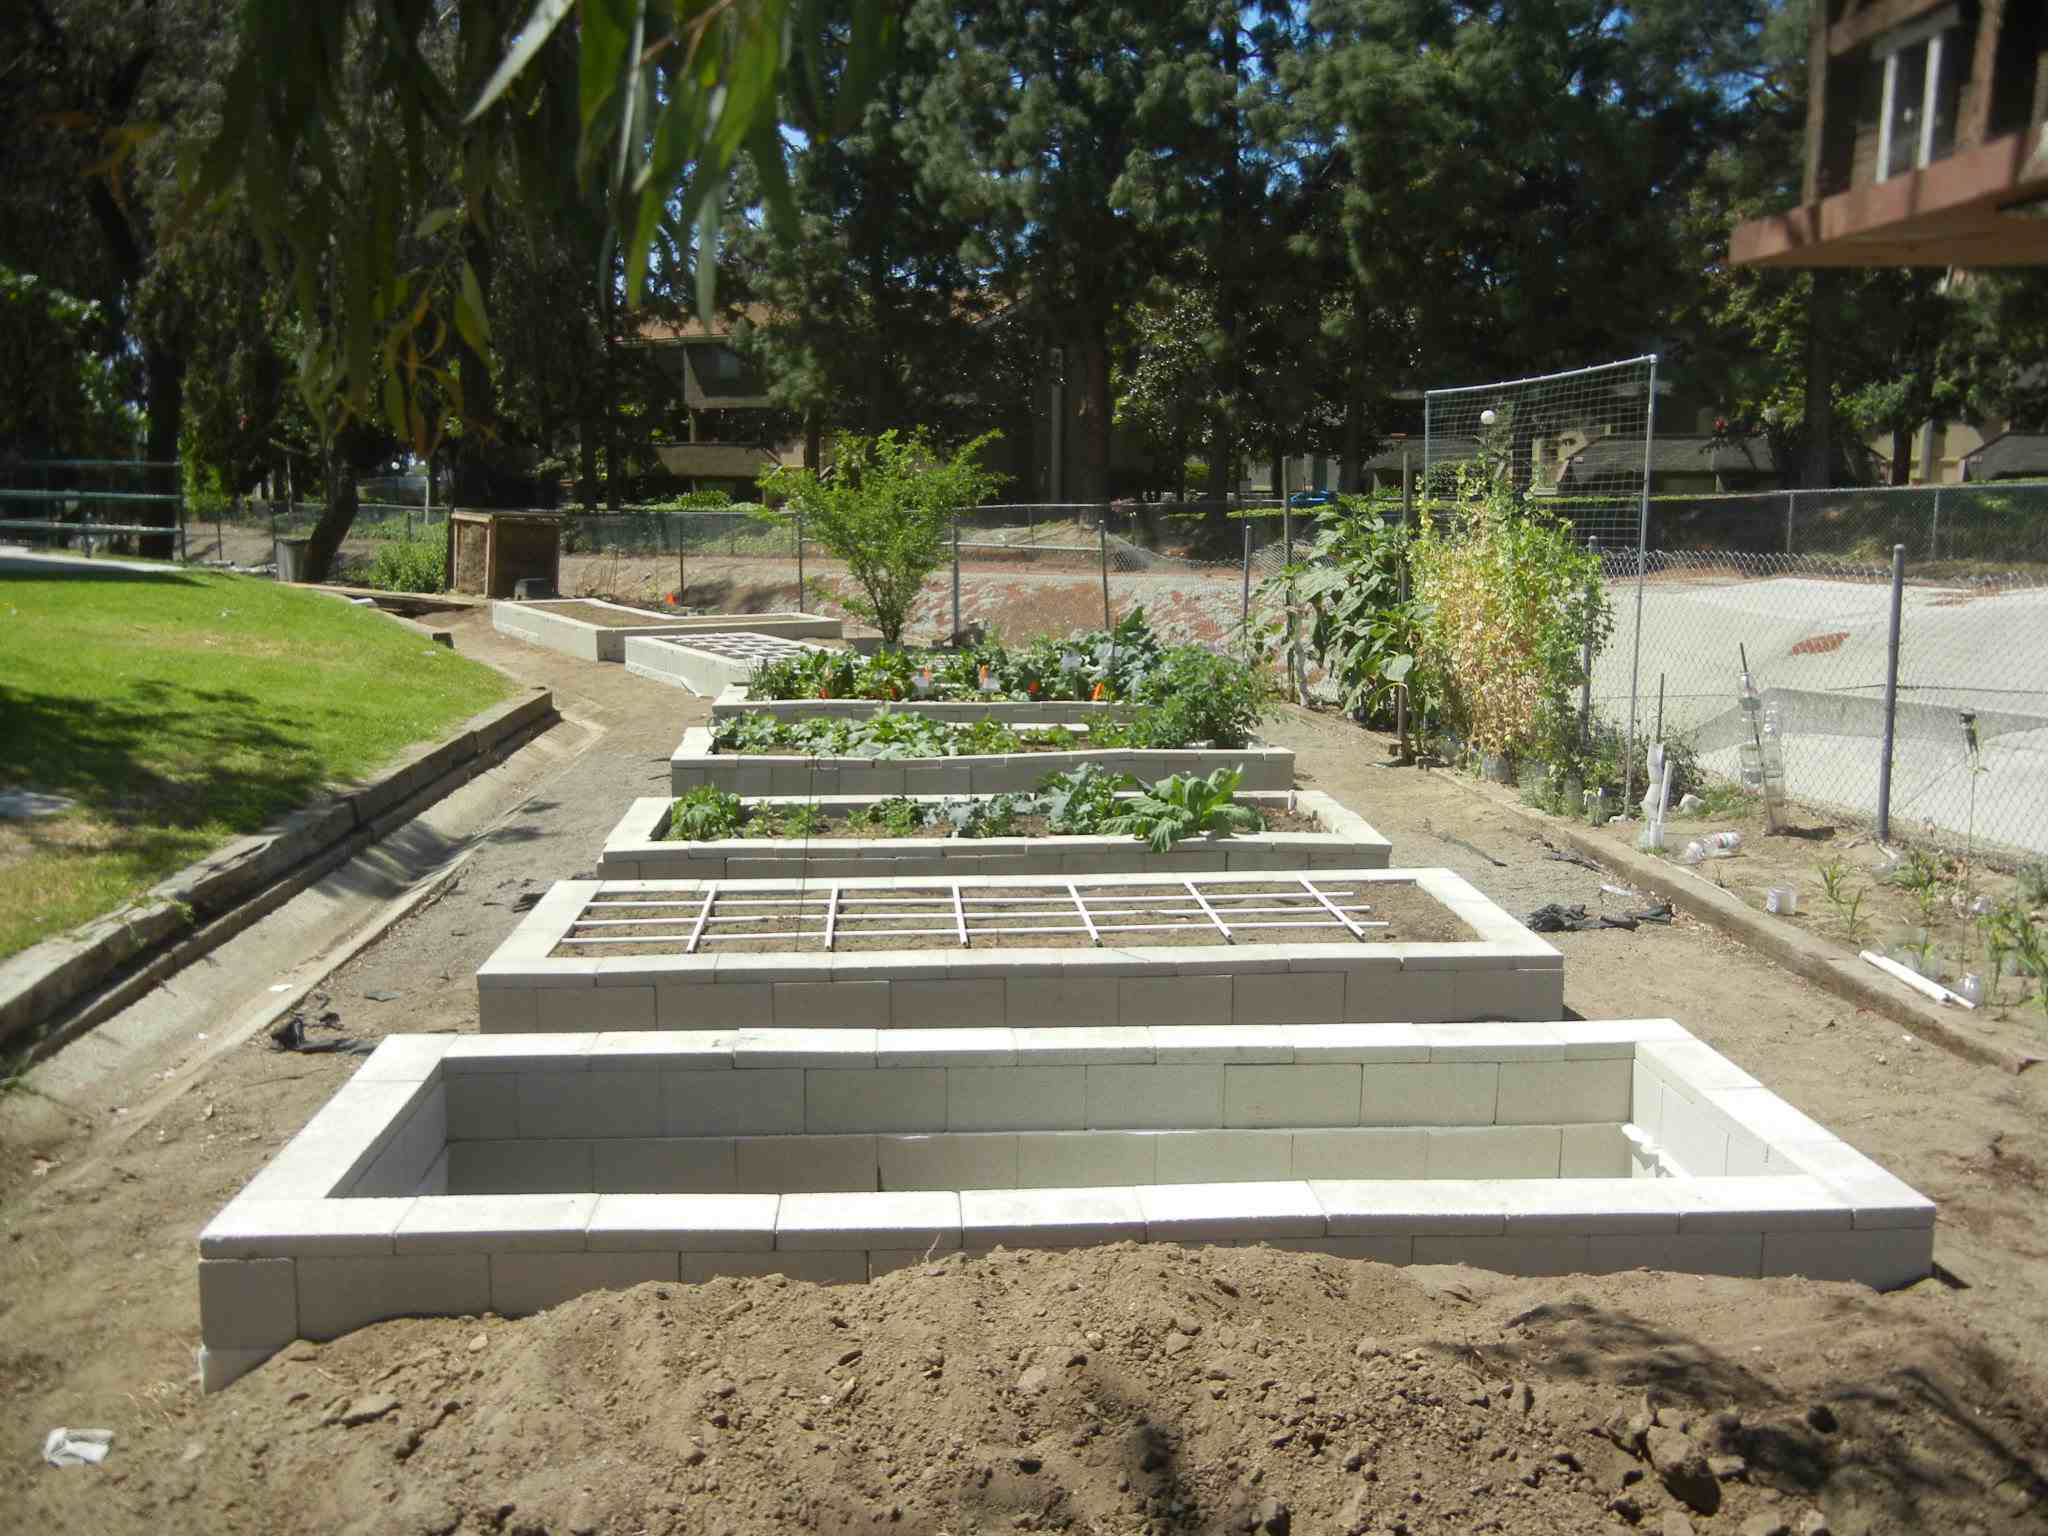 Concrete Raised Garden Beds Easy To Build And Fairly Cement Garden Bed 1542319 Hd Wallpaper Backgrounds Download